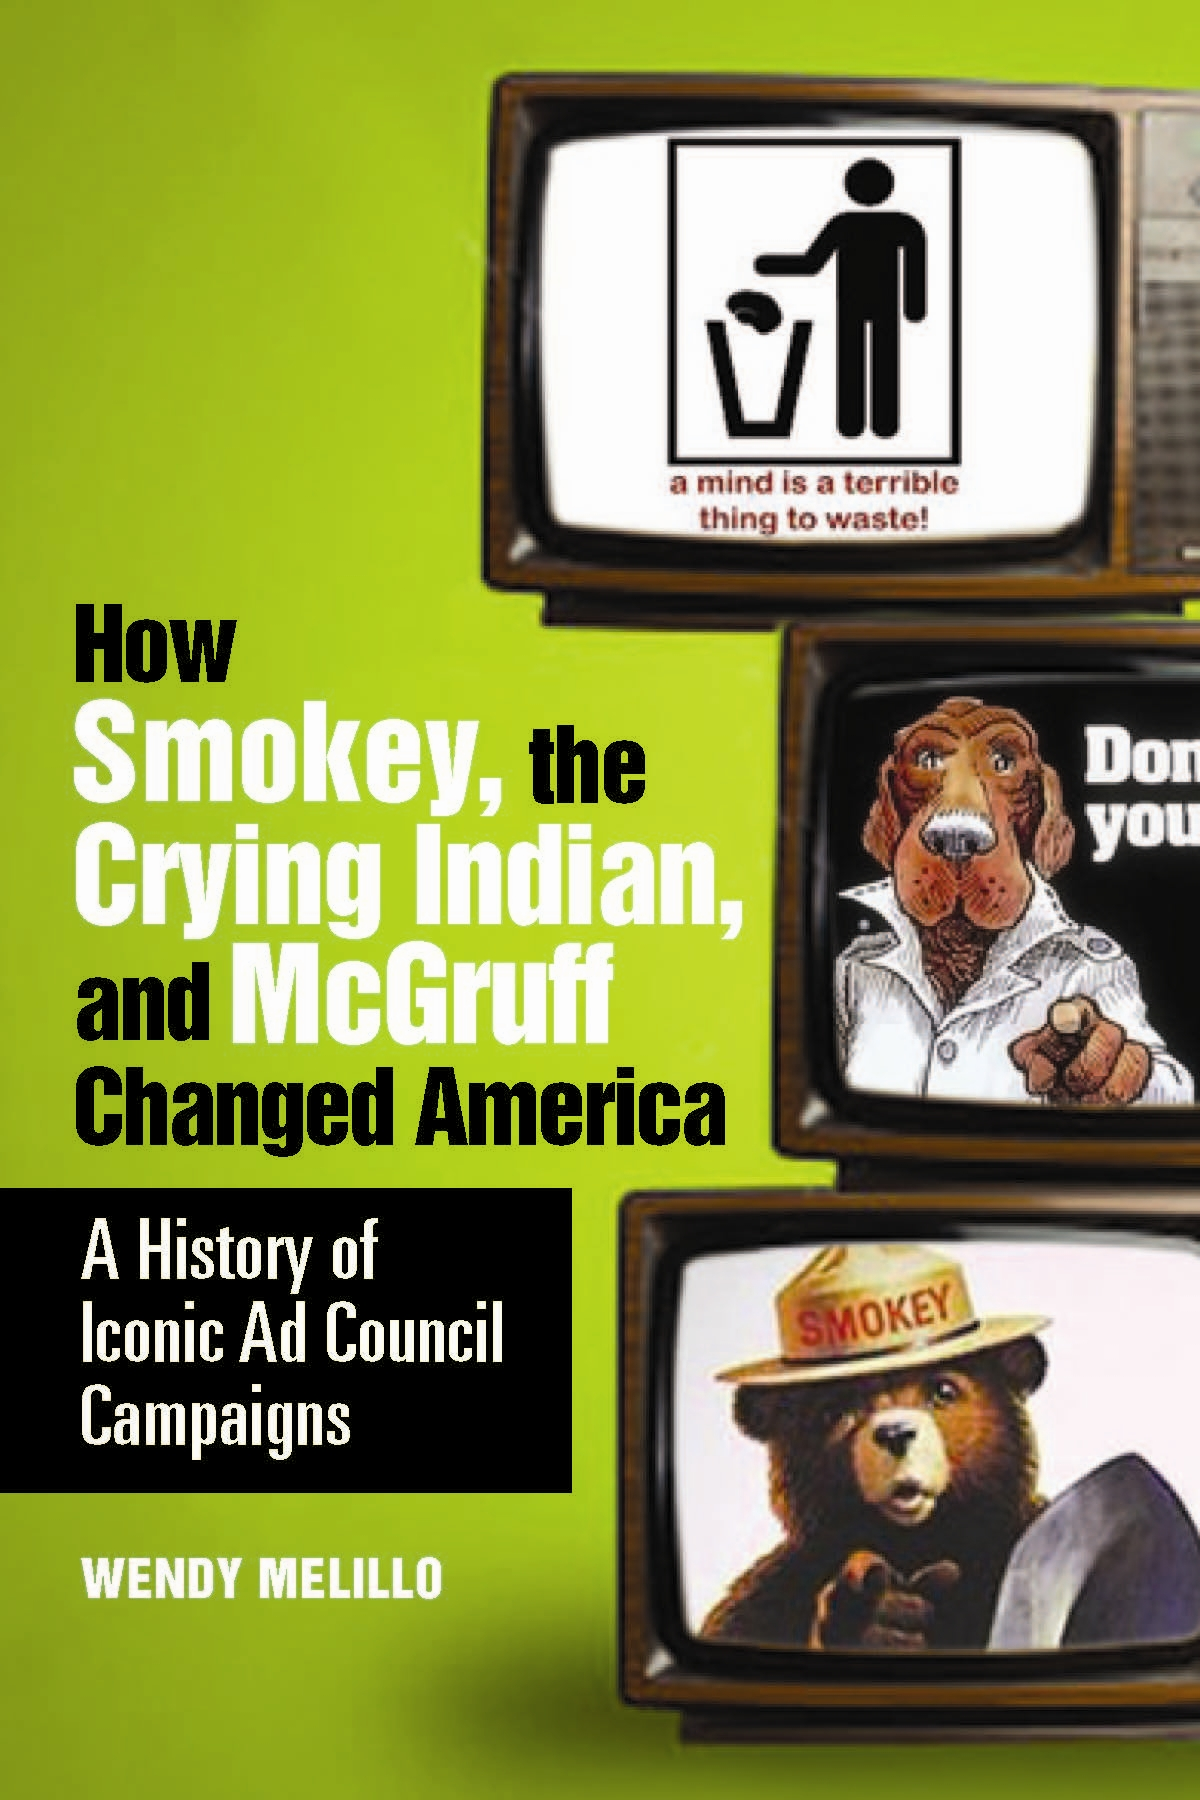 how mcgruff and the crying indian changed america a history of iconic ad council campaigns